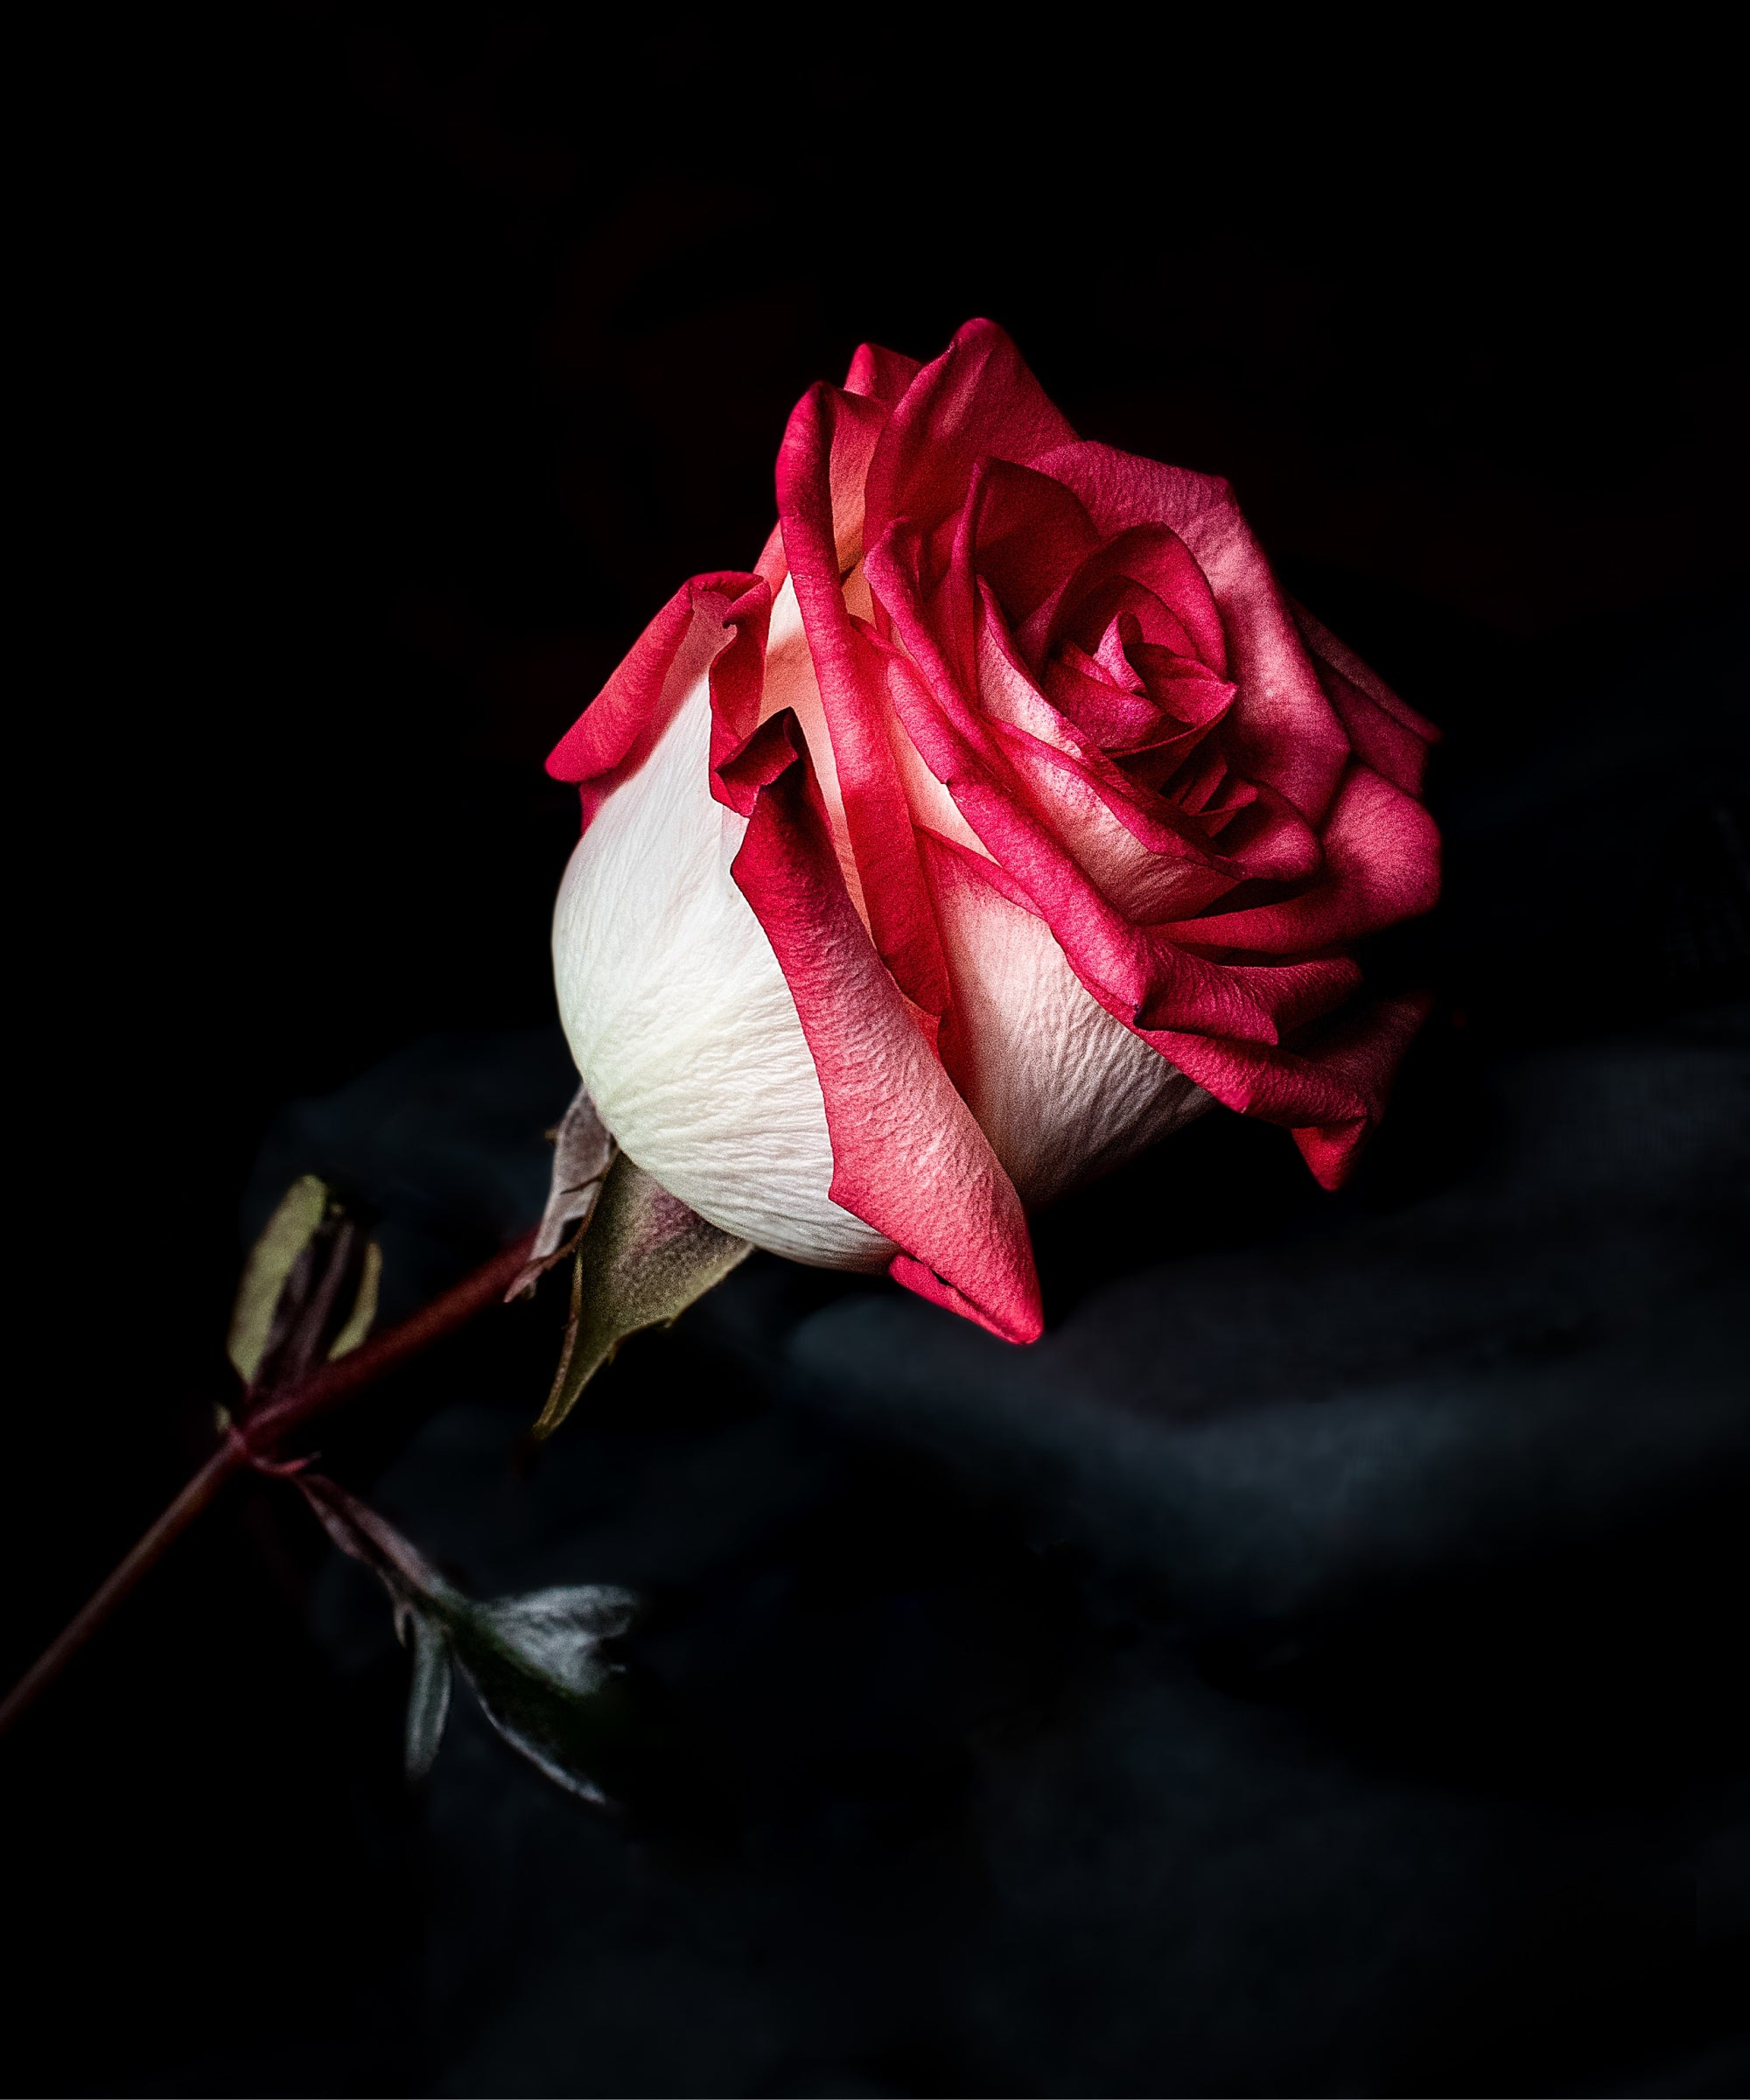 Nothing says 'I love you' more than a red rose | Talsam